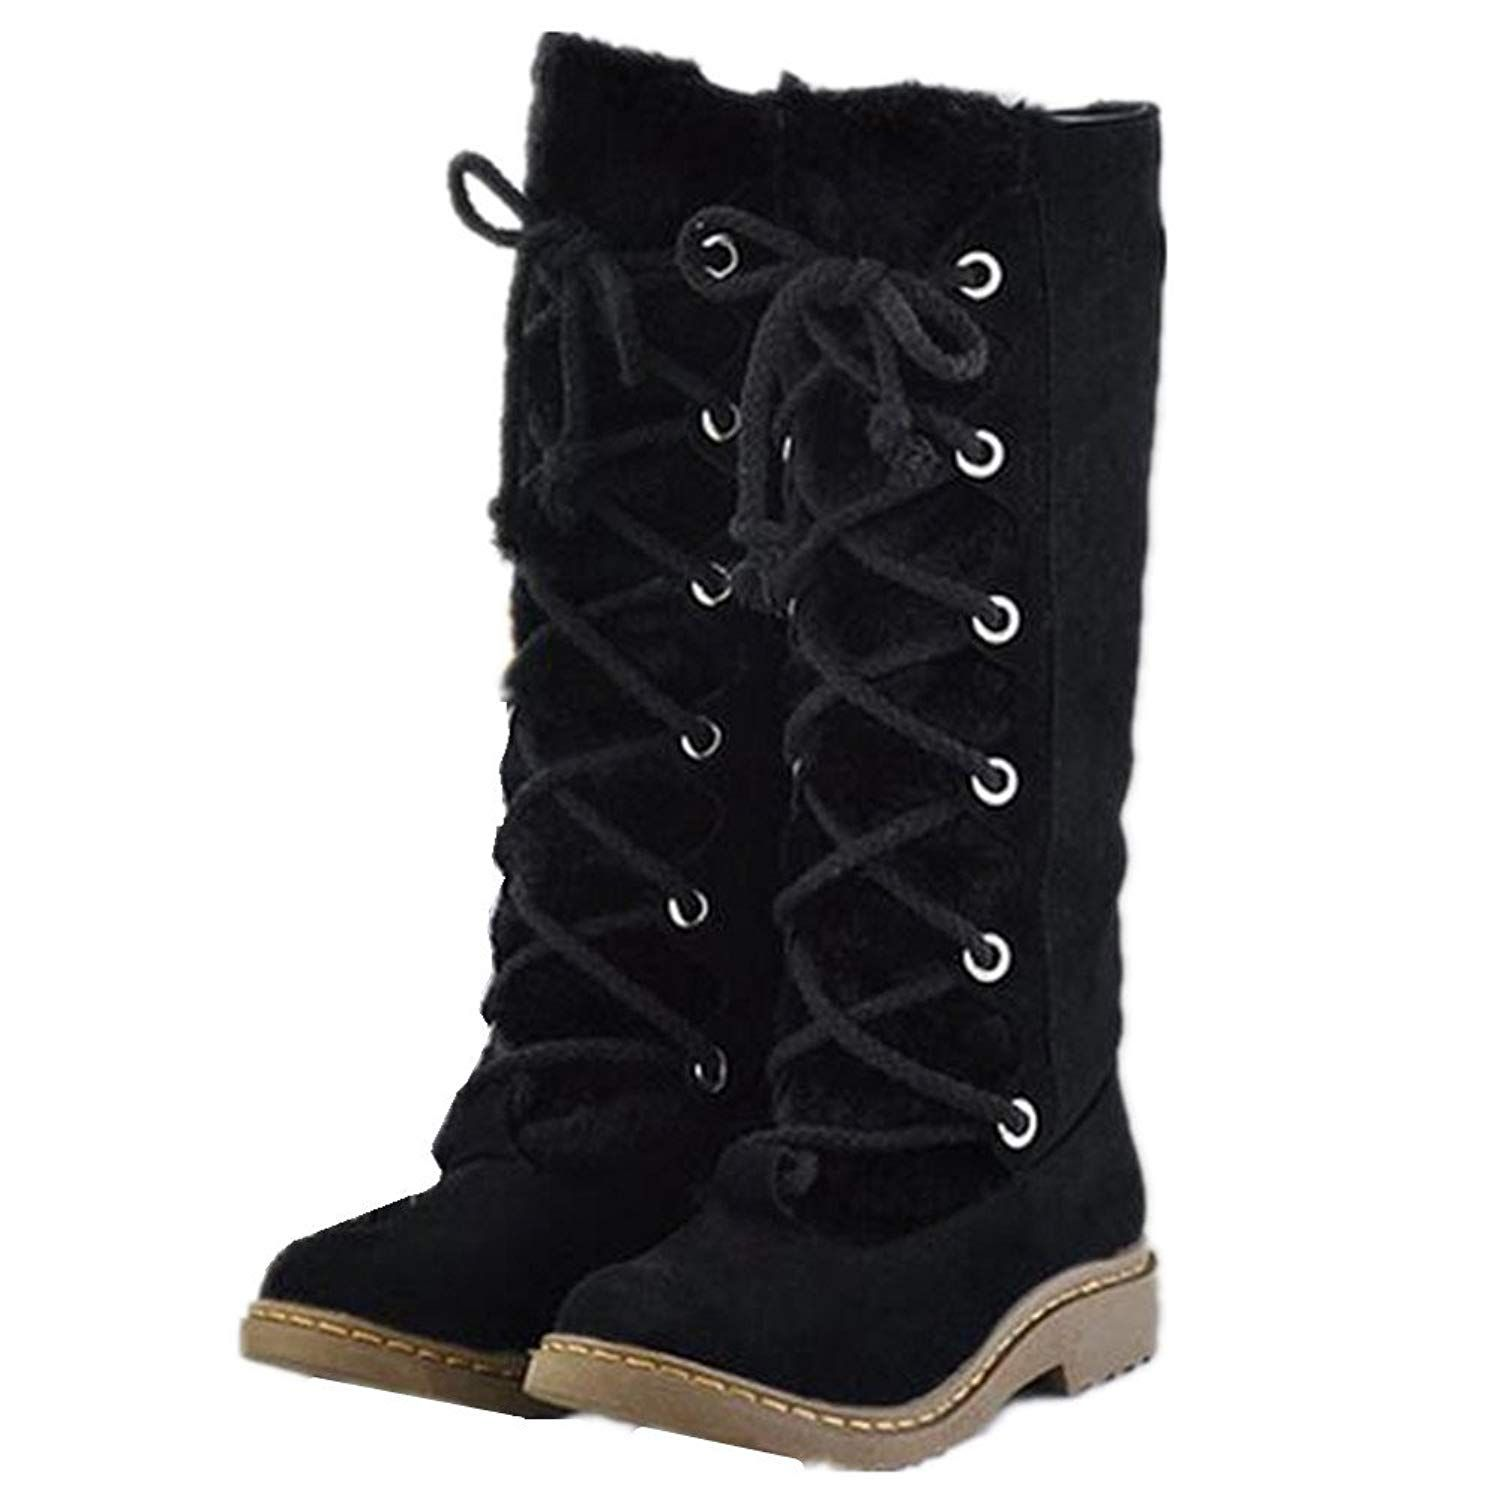 e916a8a5fa5 HAPPYLIVE SHOPPING Womens Winter Warm Quilted Knee High Mid Calf Waterproof  Thick Faux Fur Lined Lace Up Low Heels Winter Rain Snow Boots   For more ...